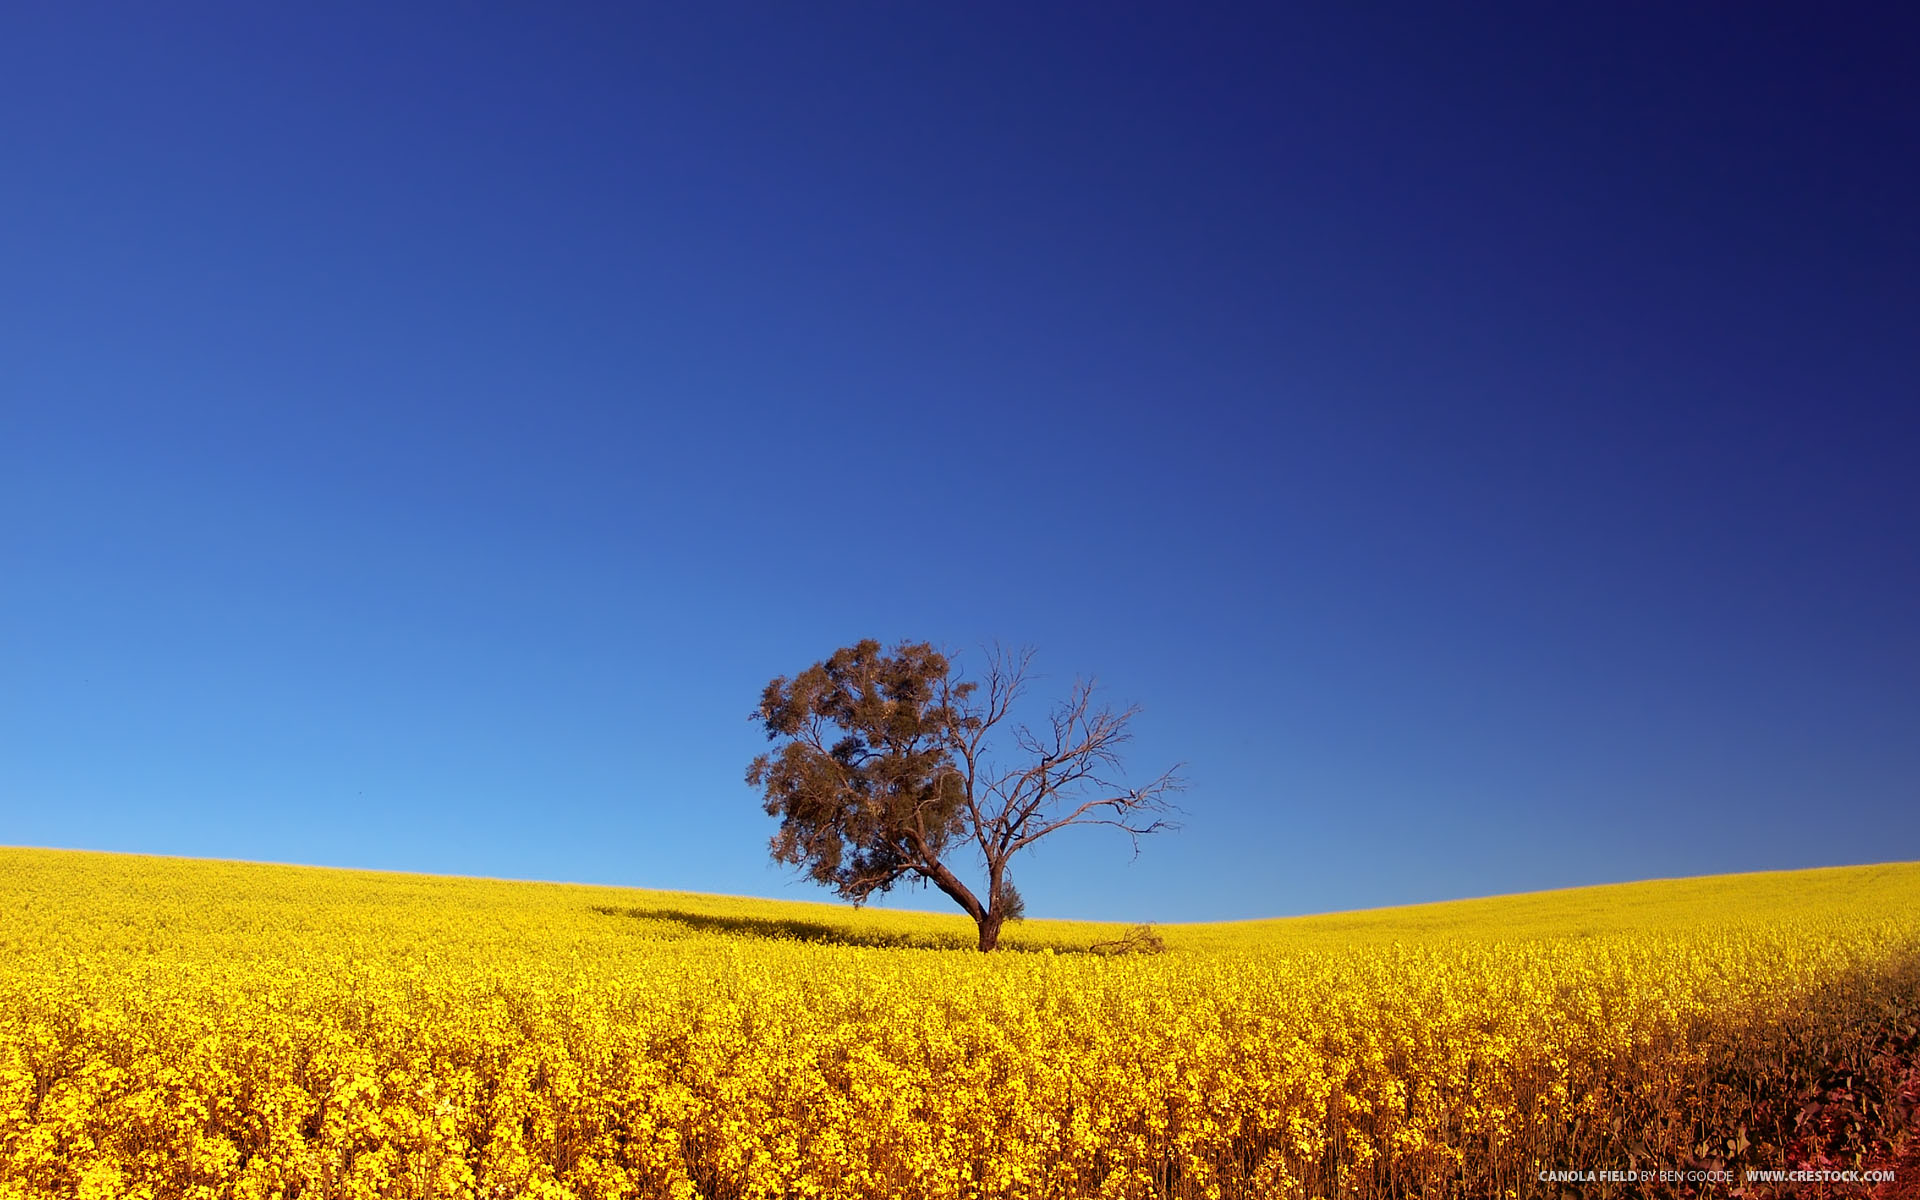 Canola Field wallpaper - 363